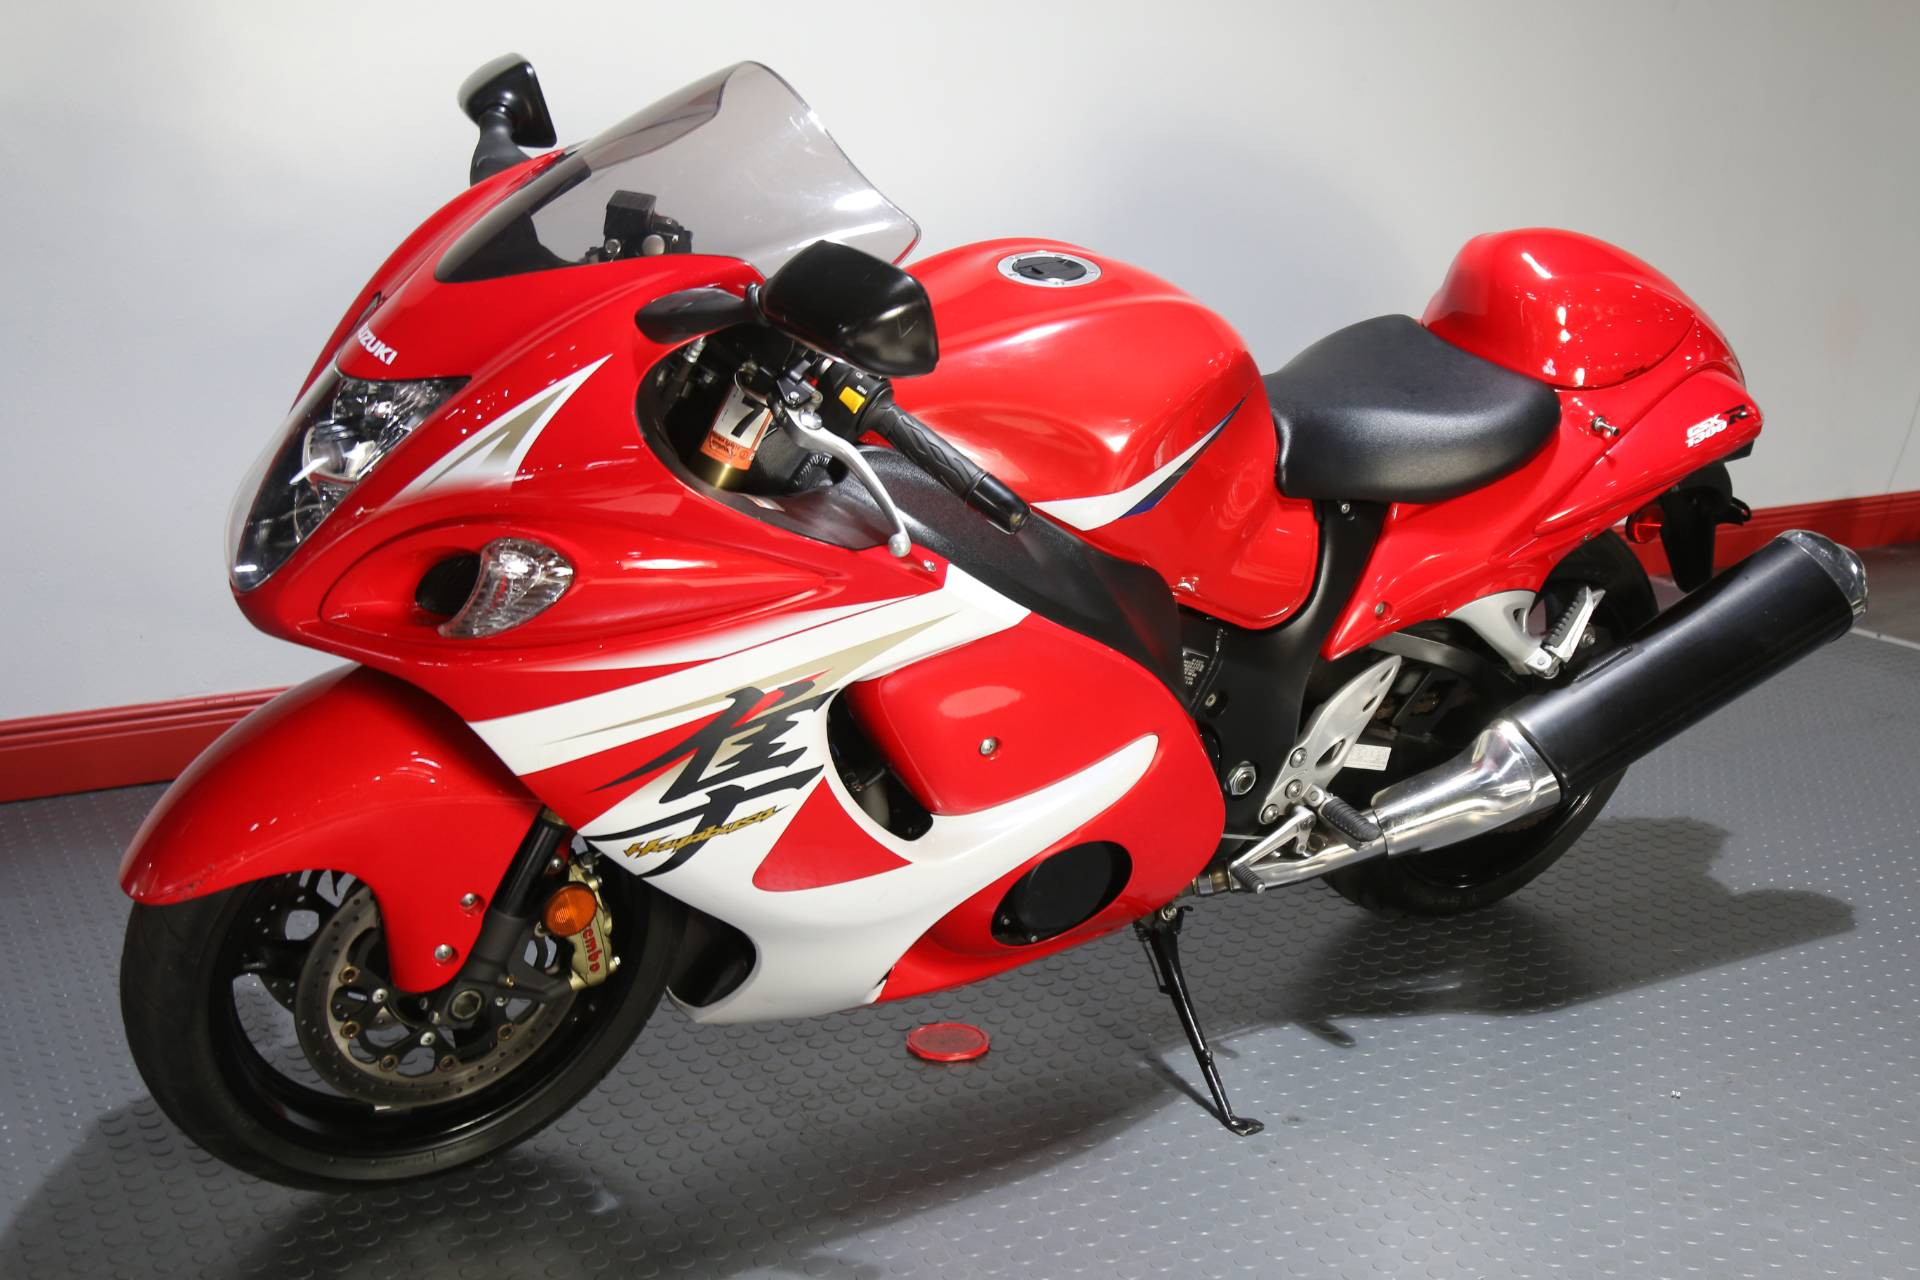 Used 2014 Suzuki Hayabusa Motorcycles in Pinellas Park, FL